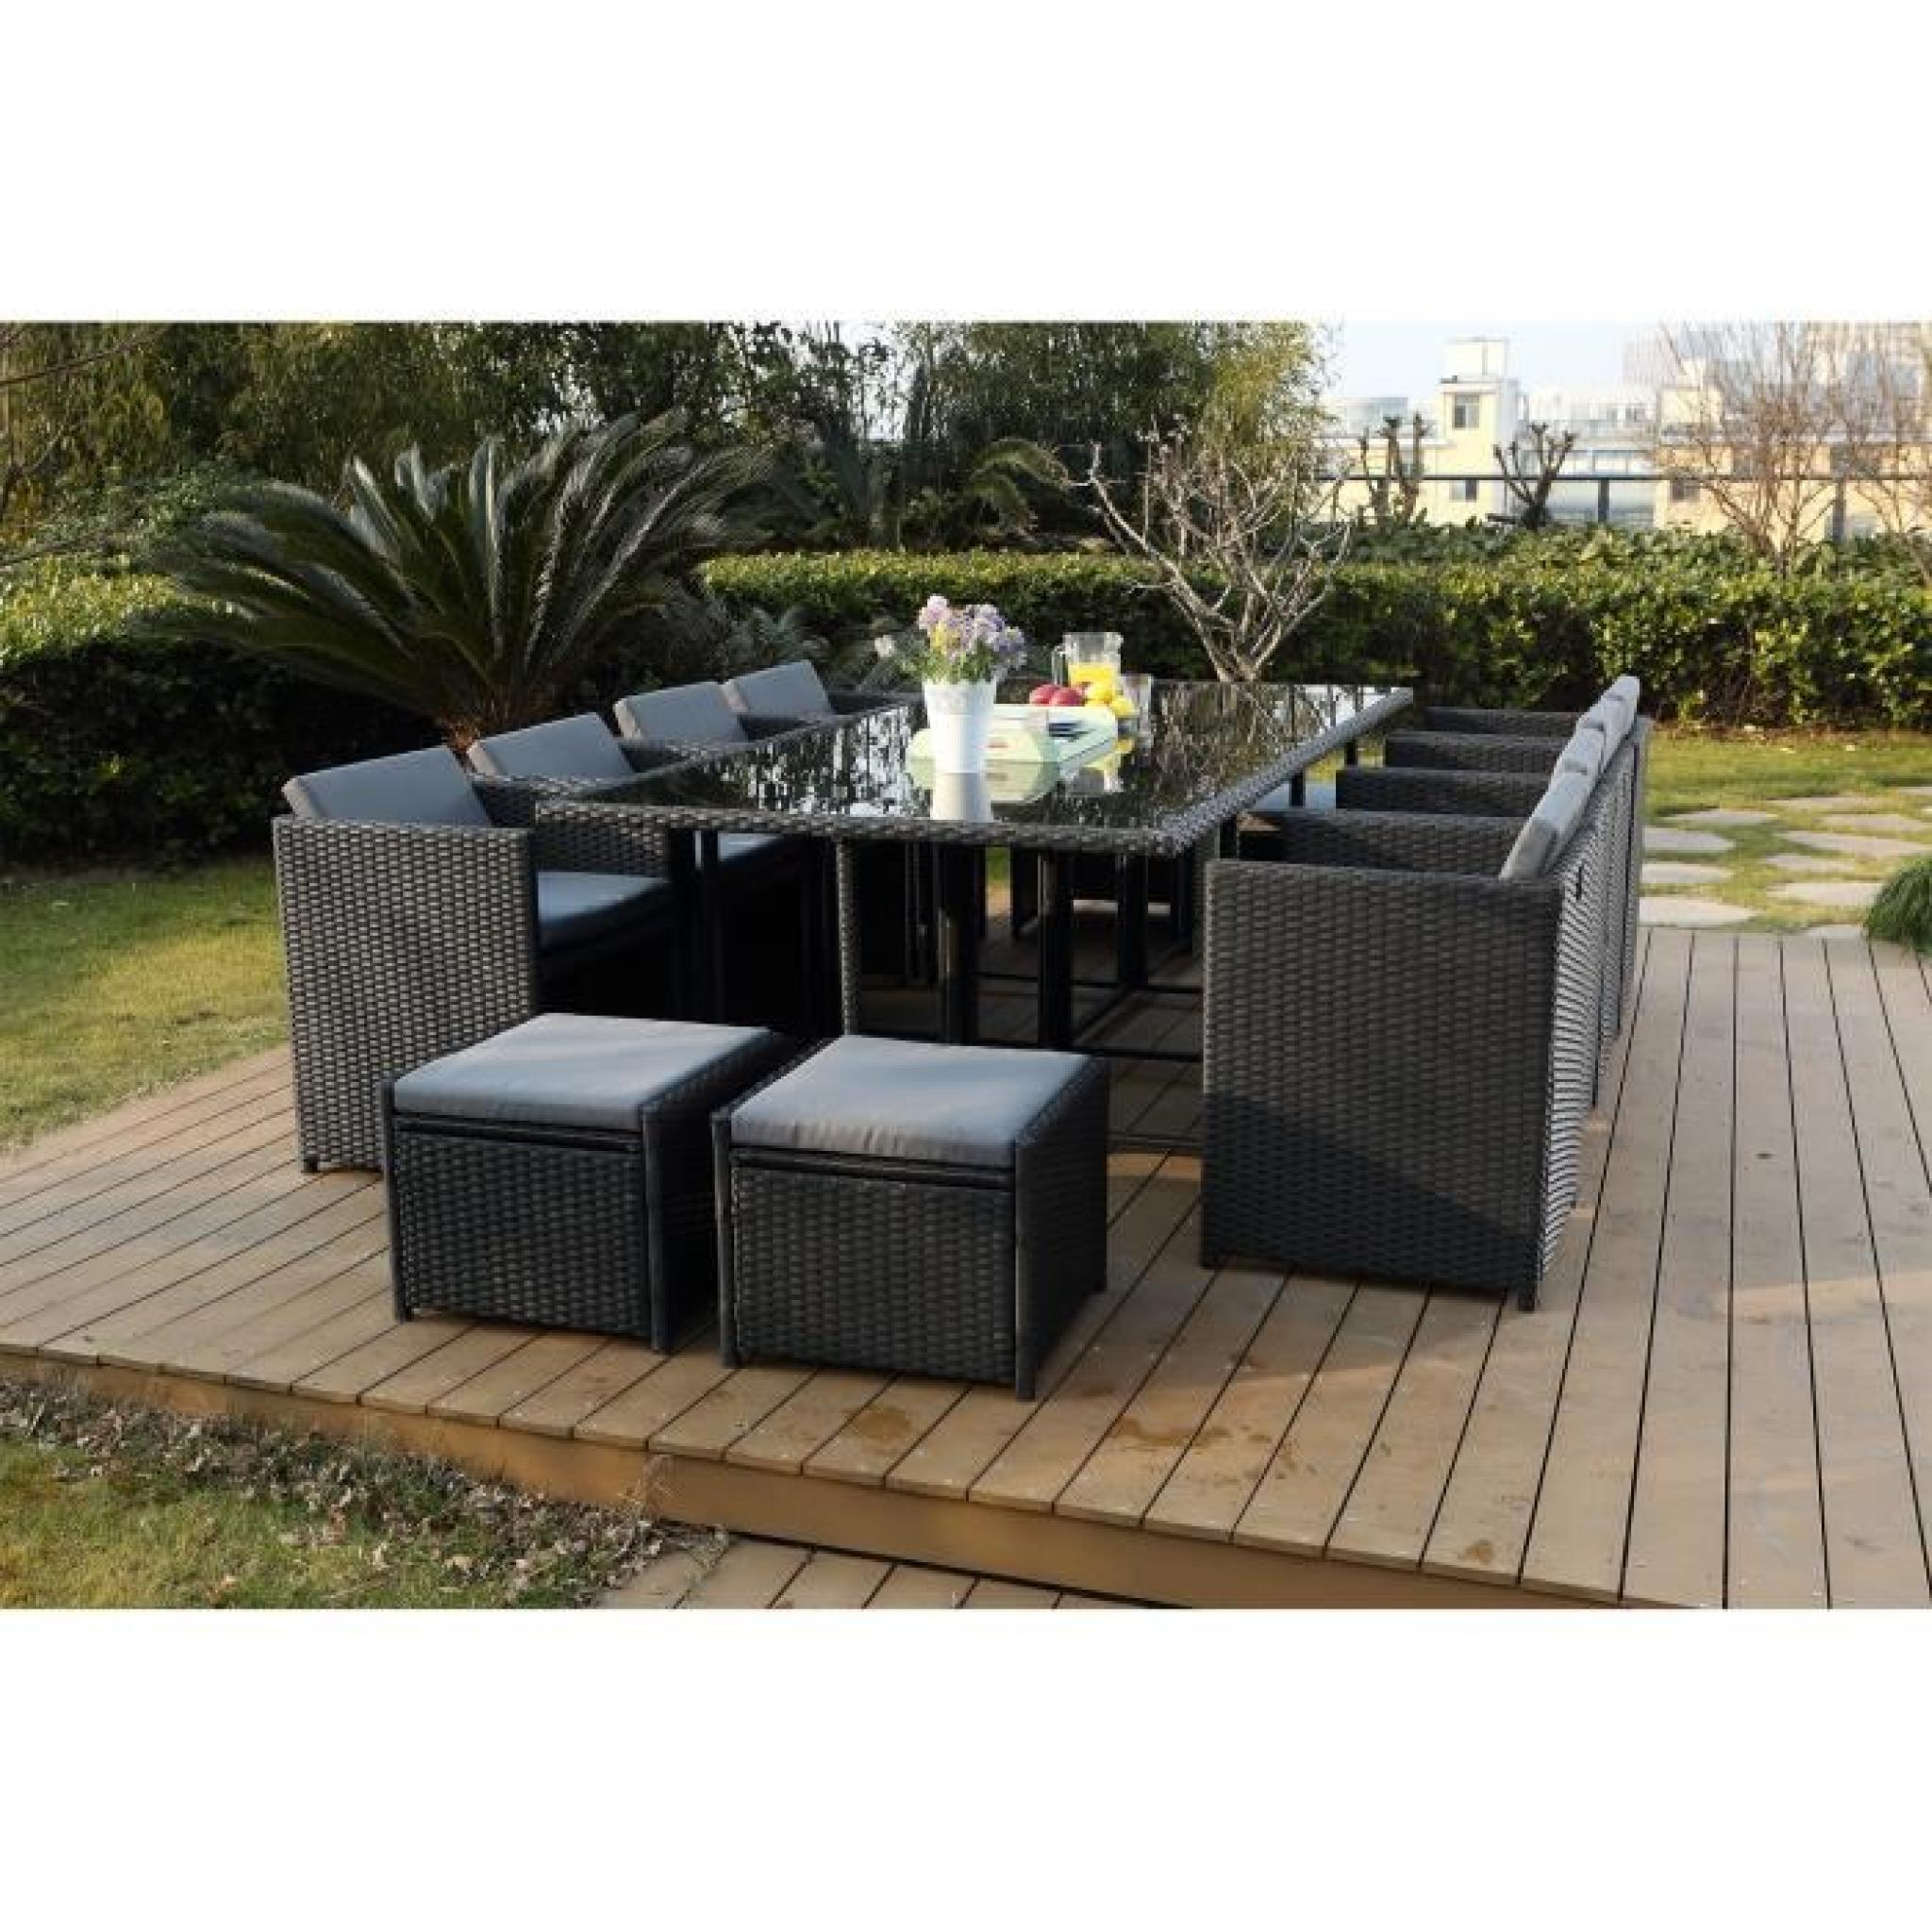 vito salon jardin noir encastrable 6 personnes achat vente salon de jardin en resine tressee. Black Bedroom Furniture Sets. Home Design Ideas